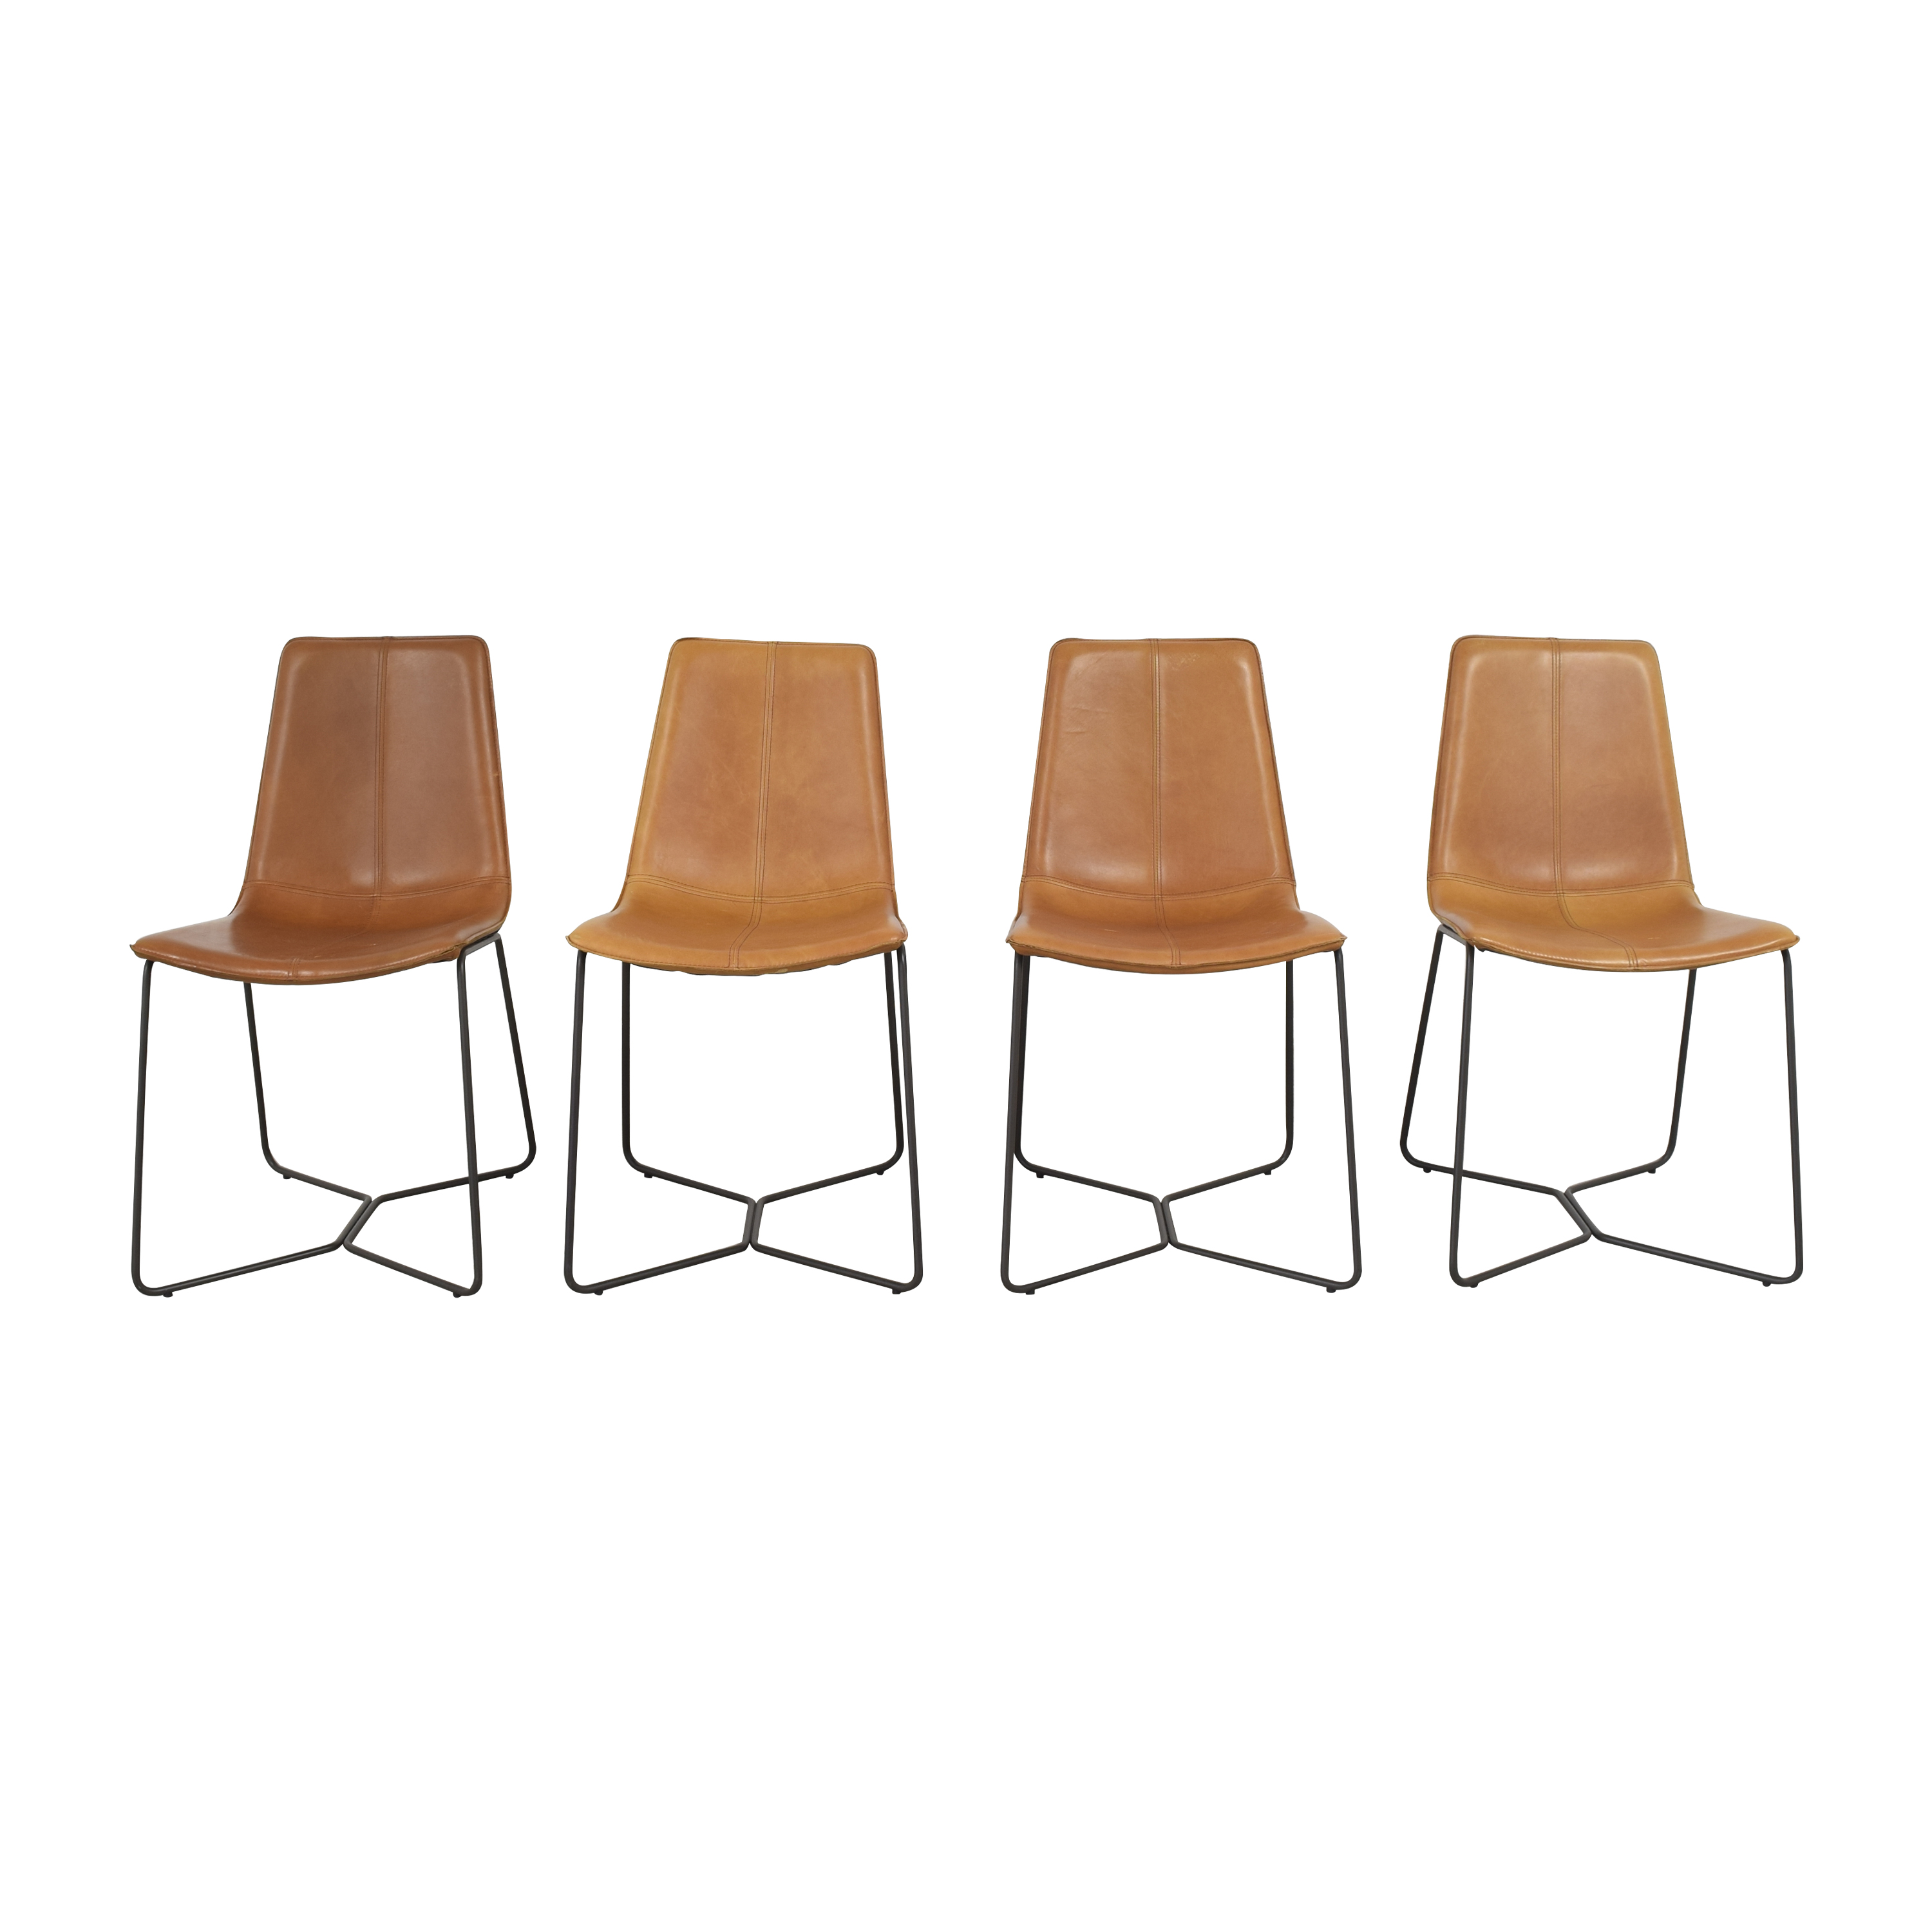 West Elm West Elm Slope Dining Chairs price